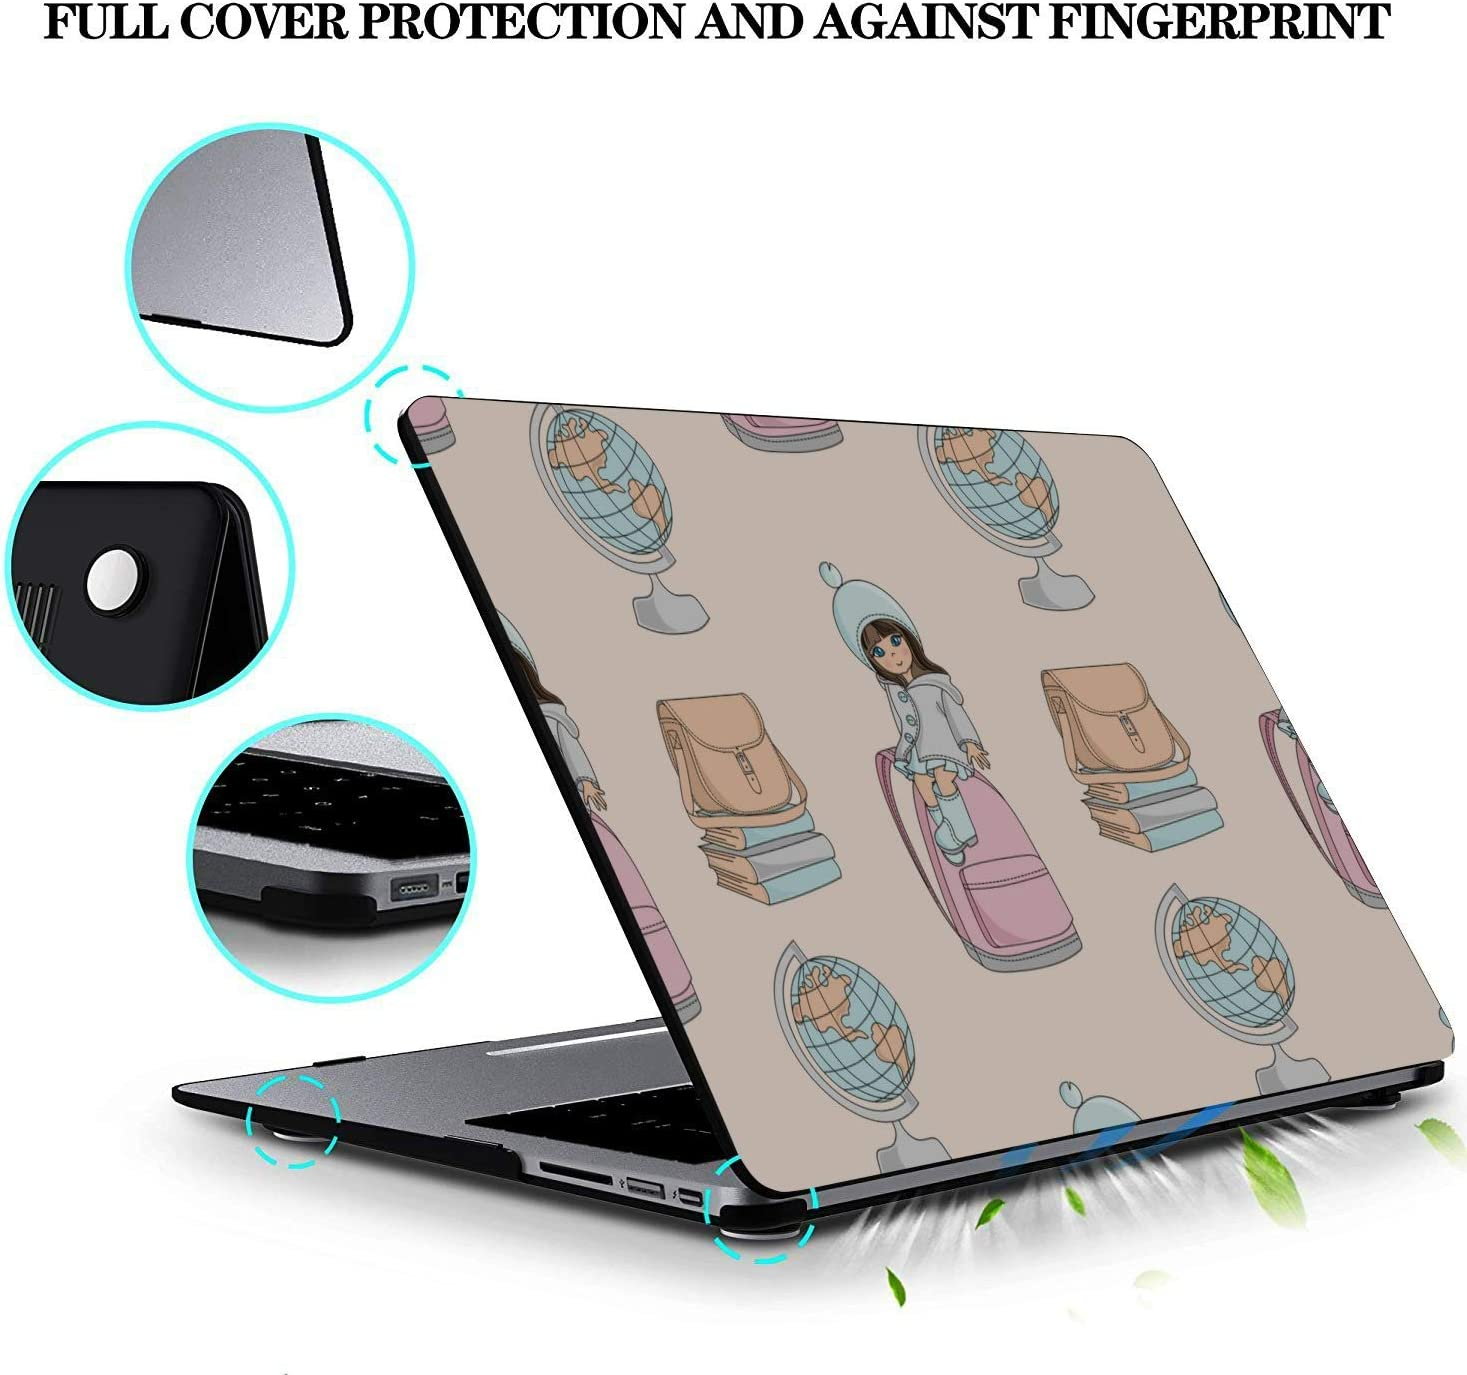 Macbookpro Case School Bag Children Backpack Ideas Plastic Hard Shell Compatible Mac Air 11 Pro 13 15 Case for Mac Protection for MacBook 2016-2019 Version